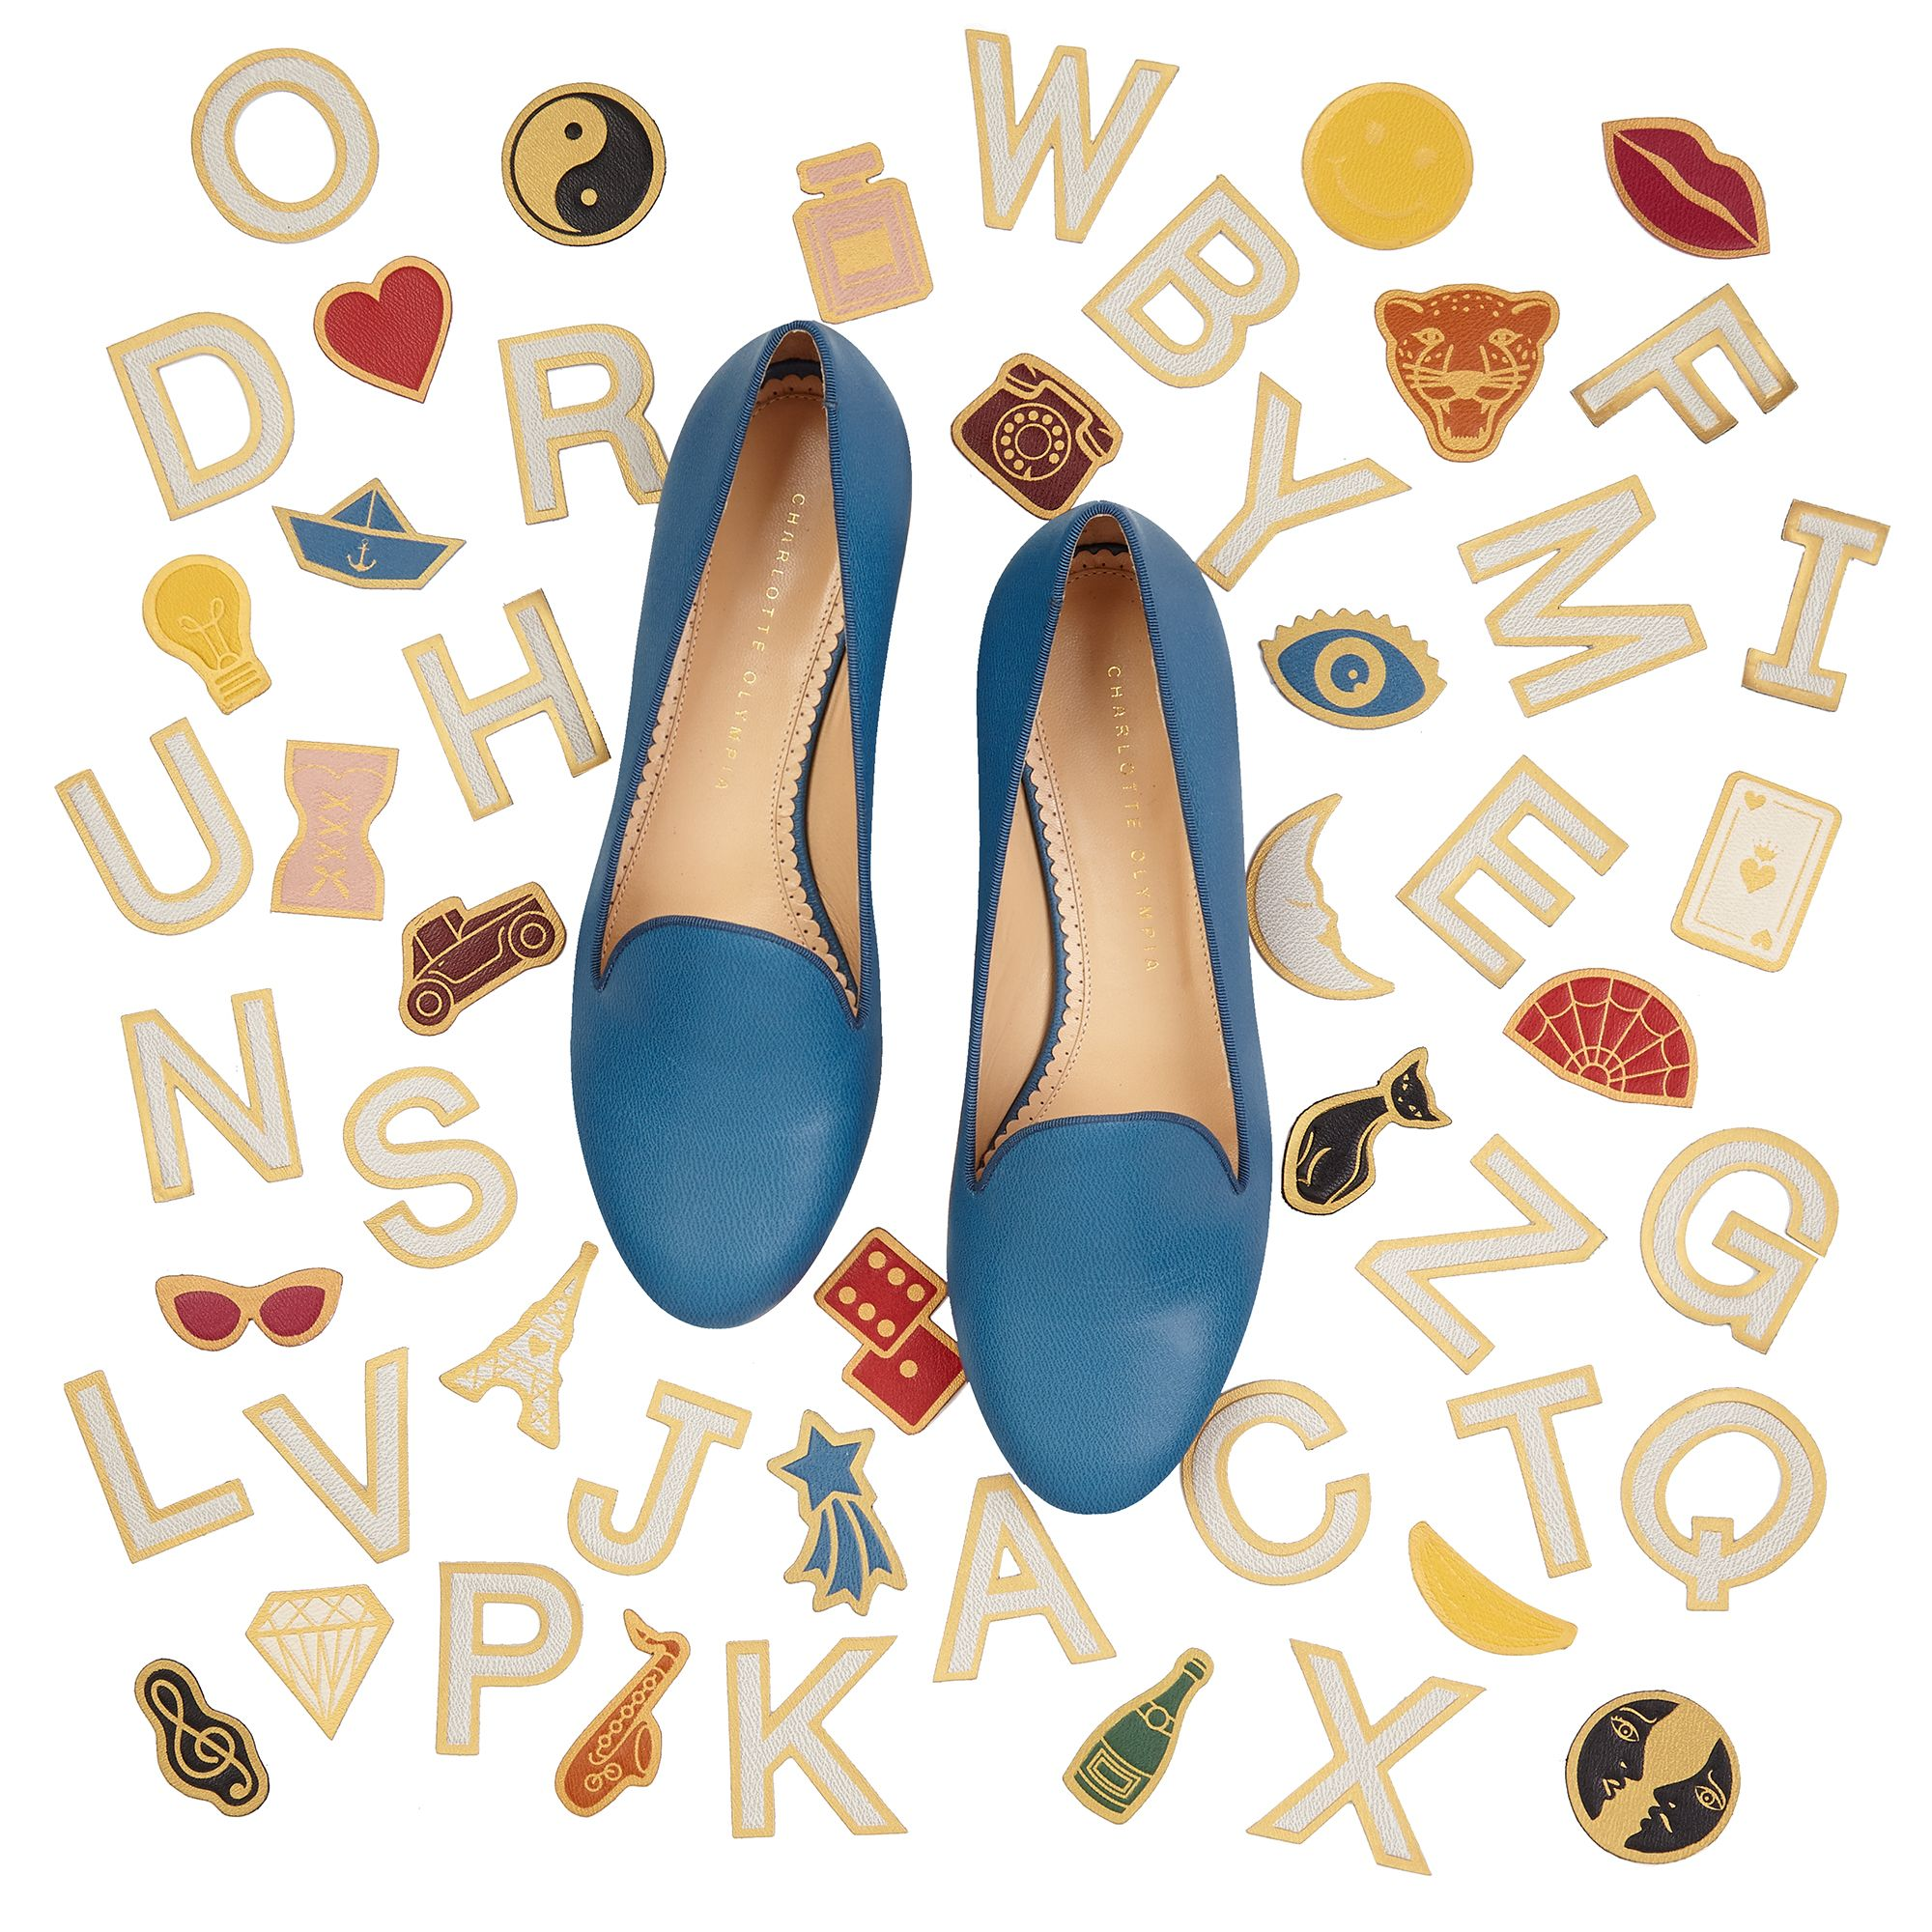 Charlotte Olympia's ABC Collection Exclusive: Charlotte